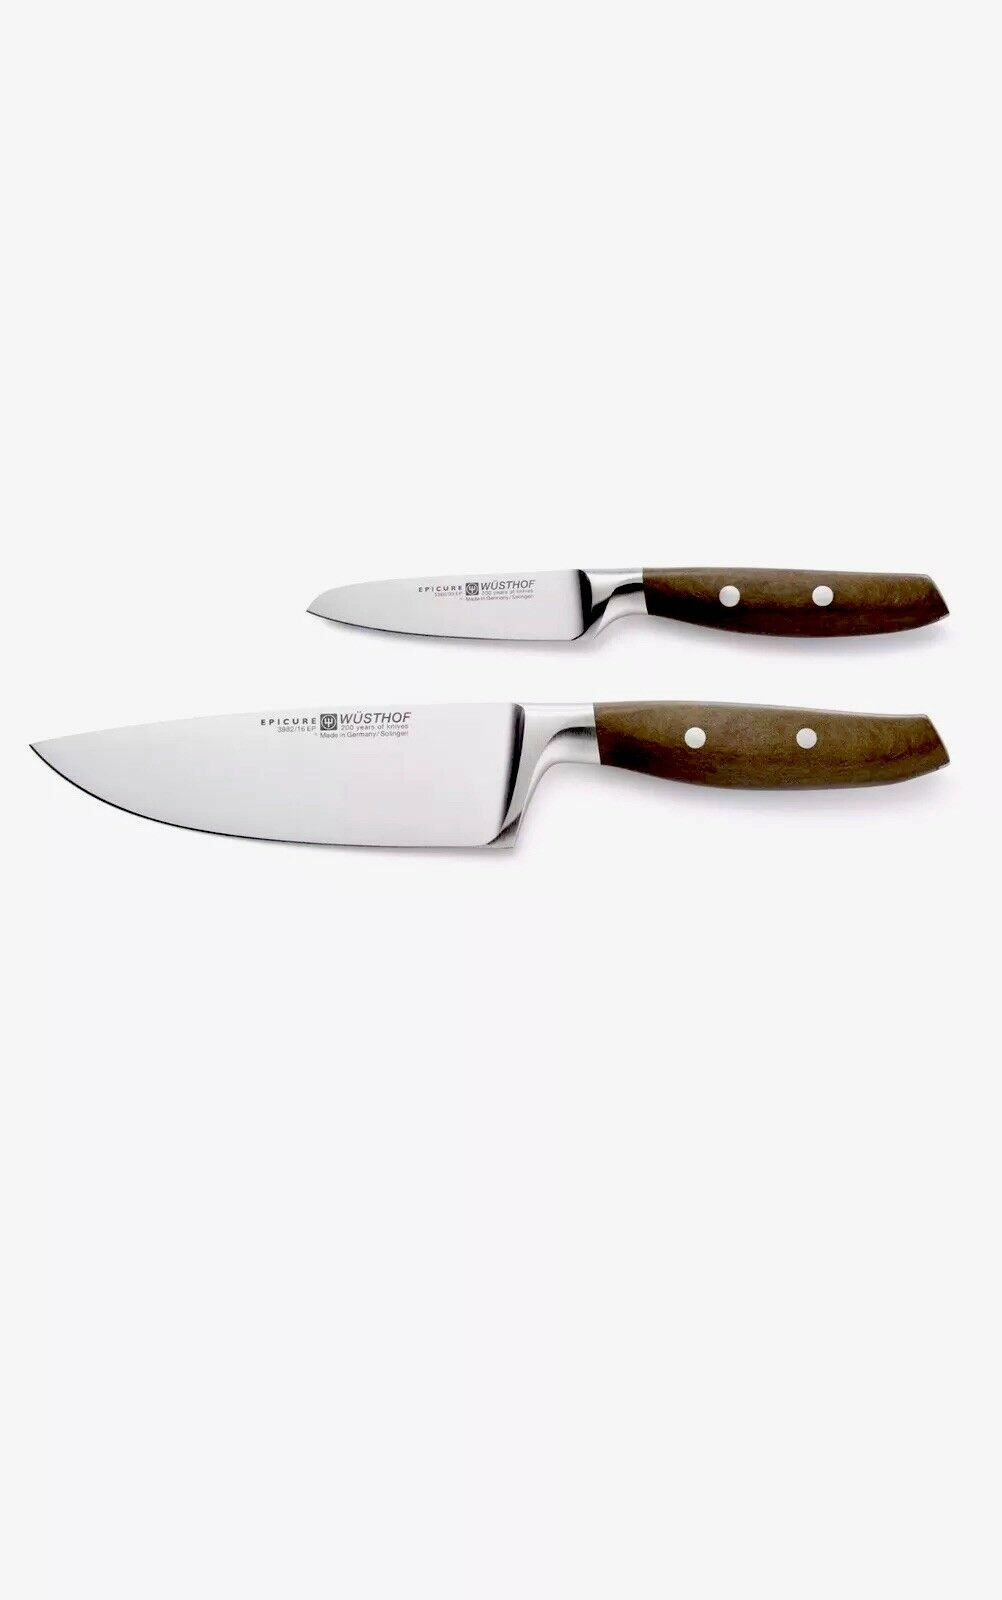 Wusthof Epicure 2 Piece Starter Kit couteau